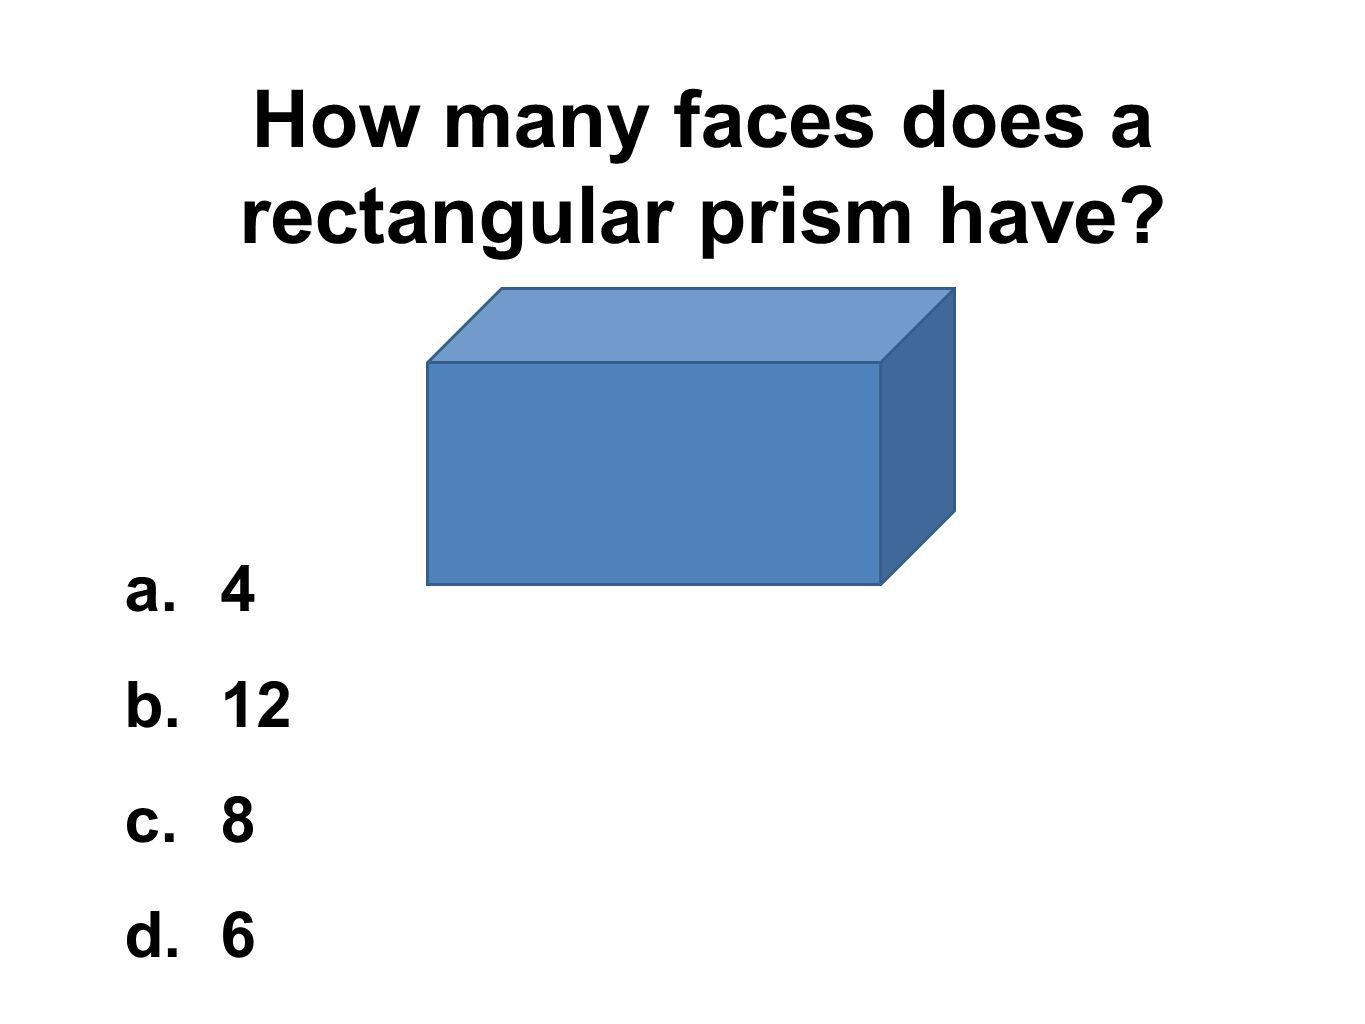 How many faces does a rectangular prism have? a.4 b.12 c.8 d.6